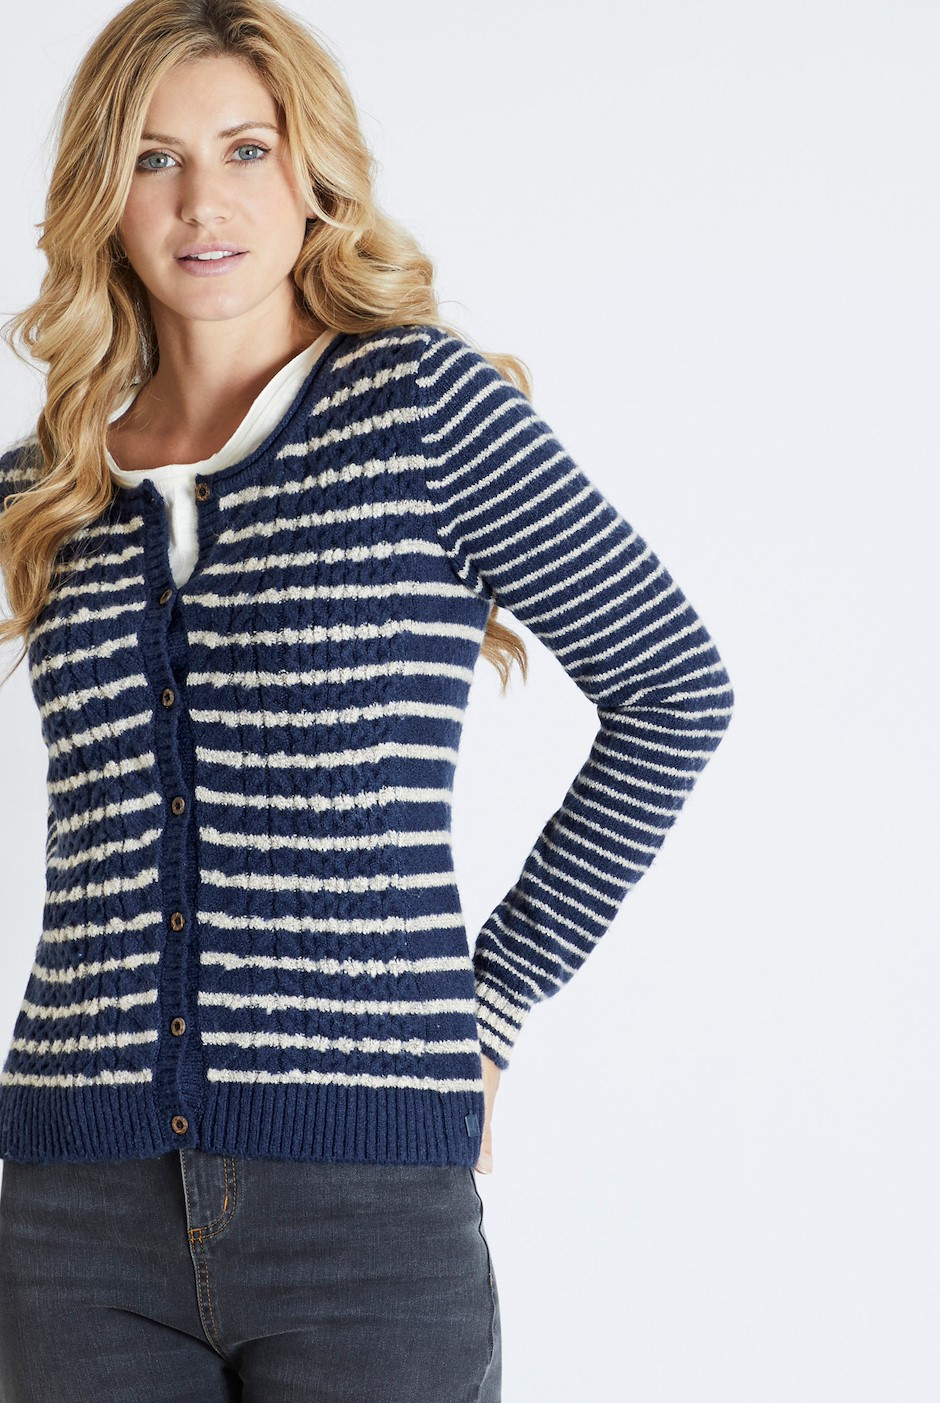 Brielle Plain Cable Knit Cardigan Navy